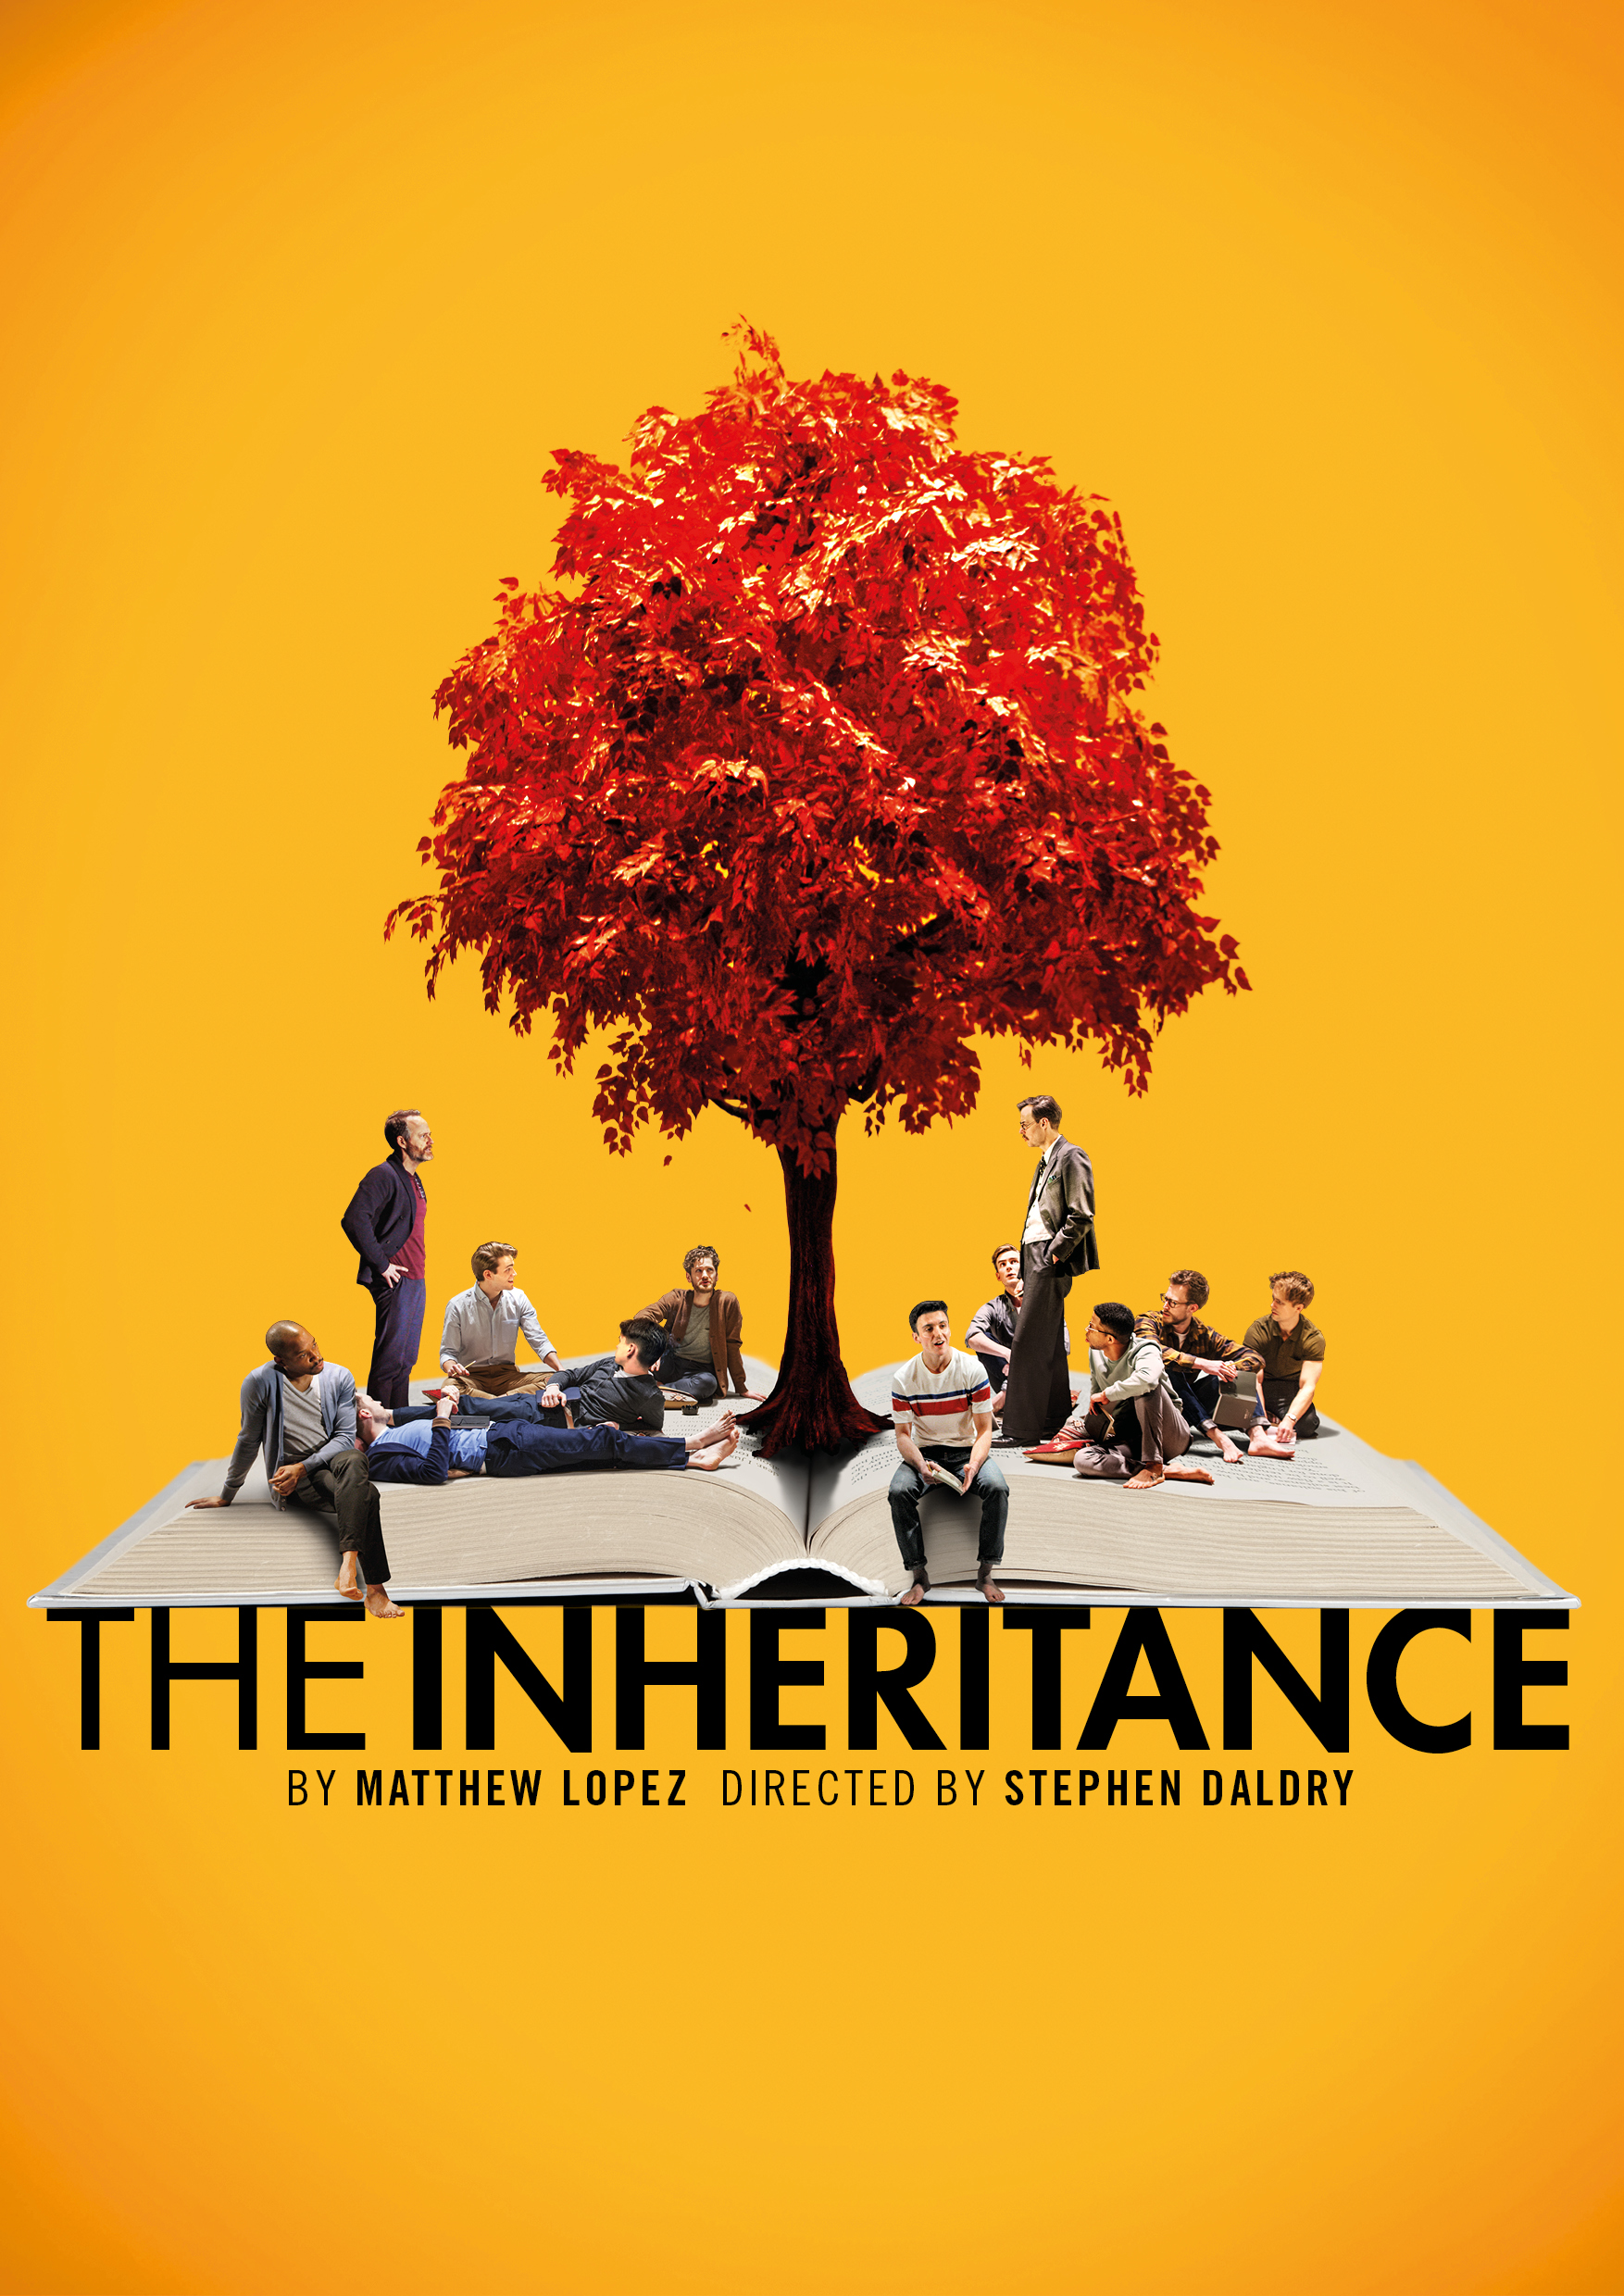 The-Inheritance_Artwork